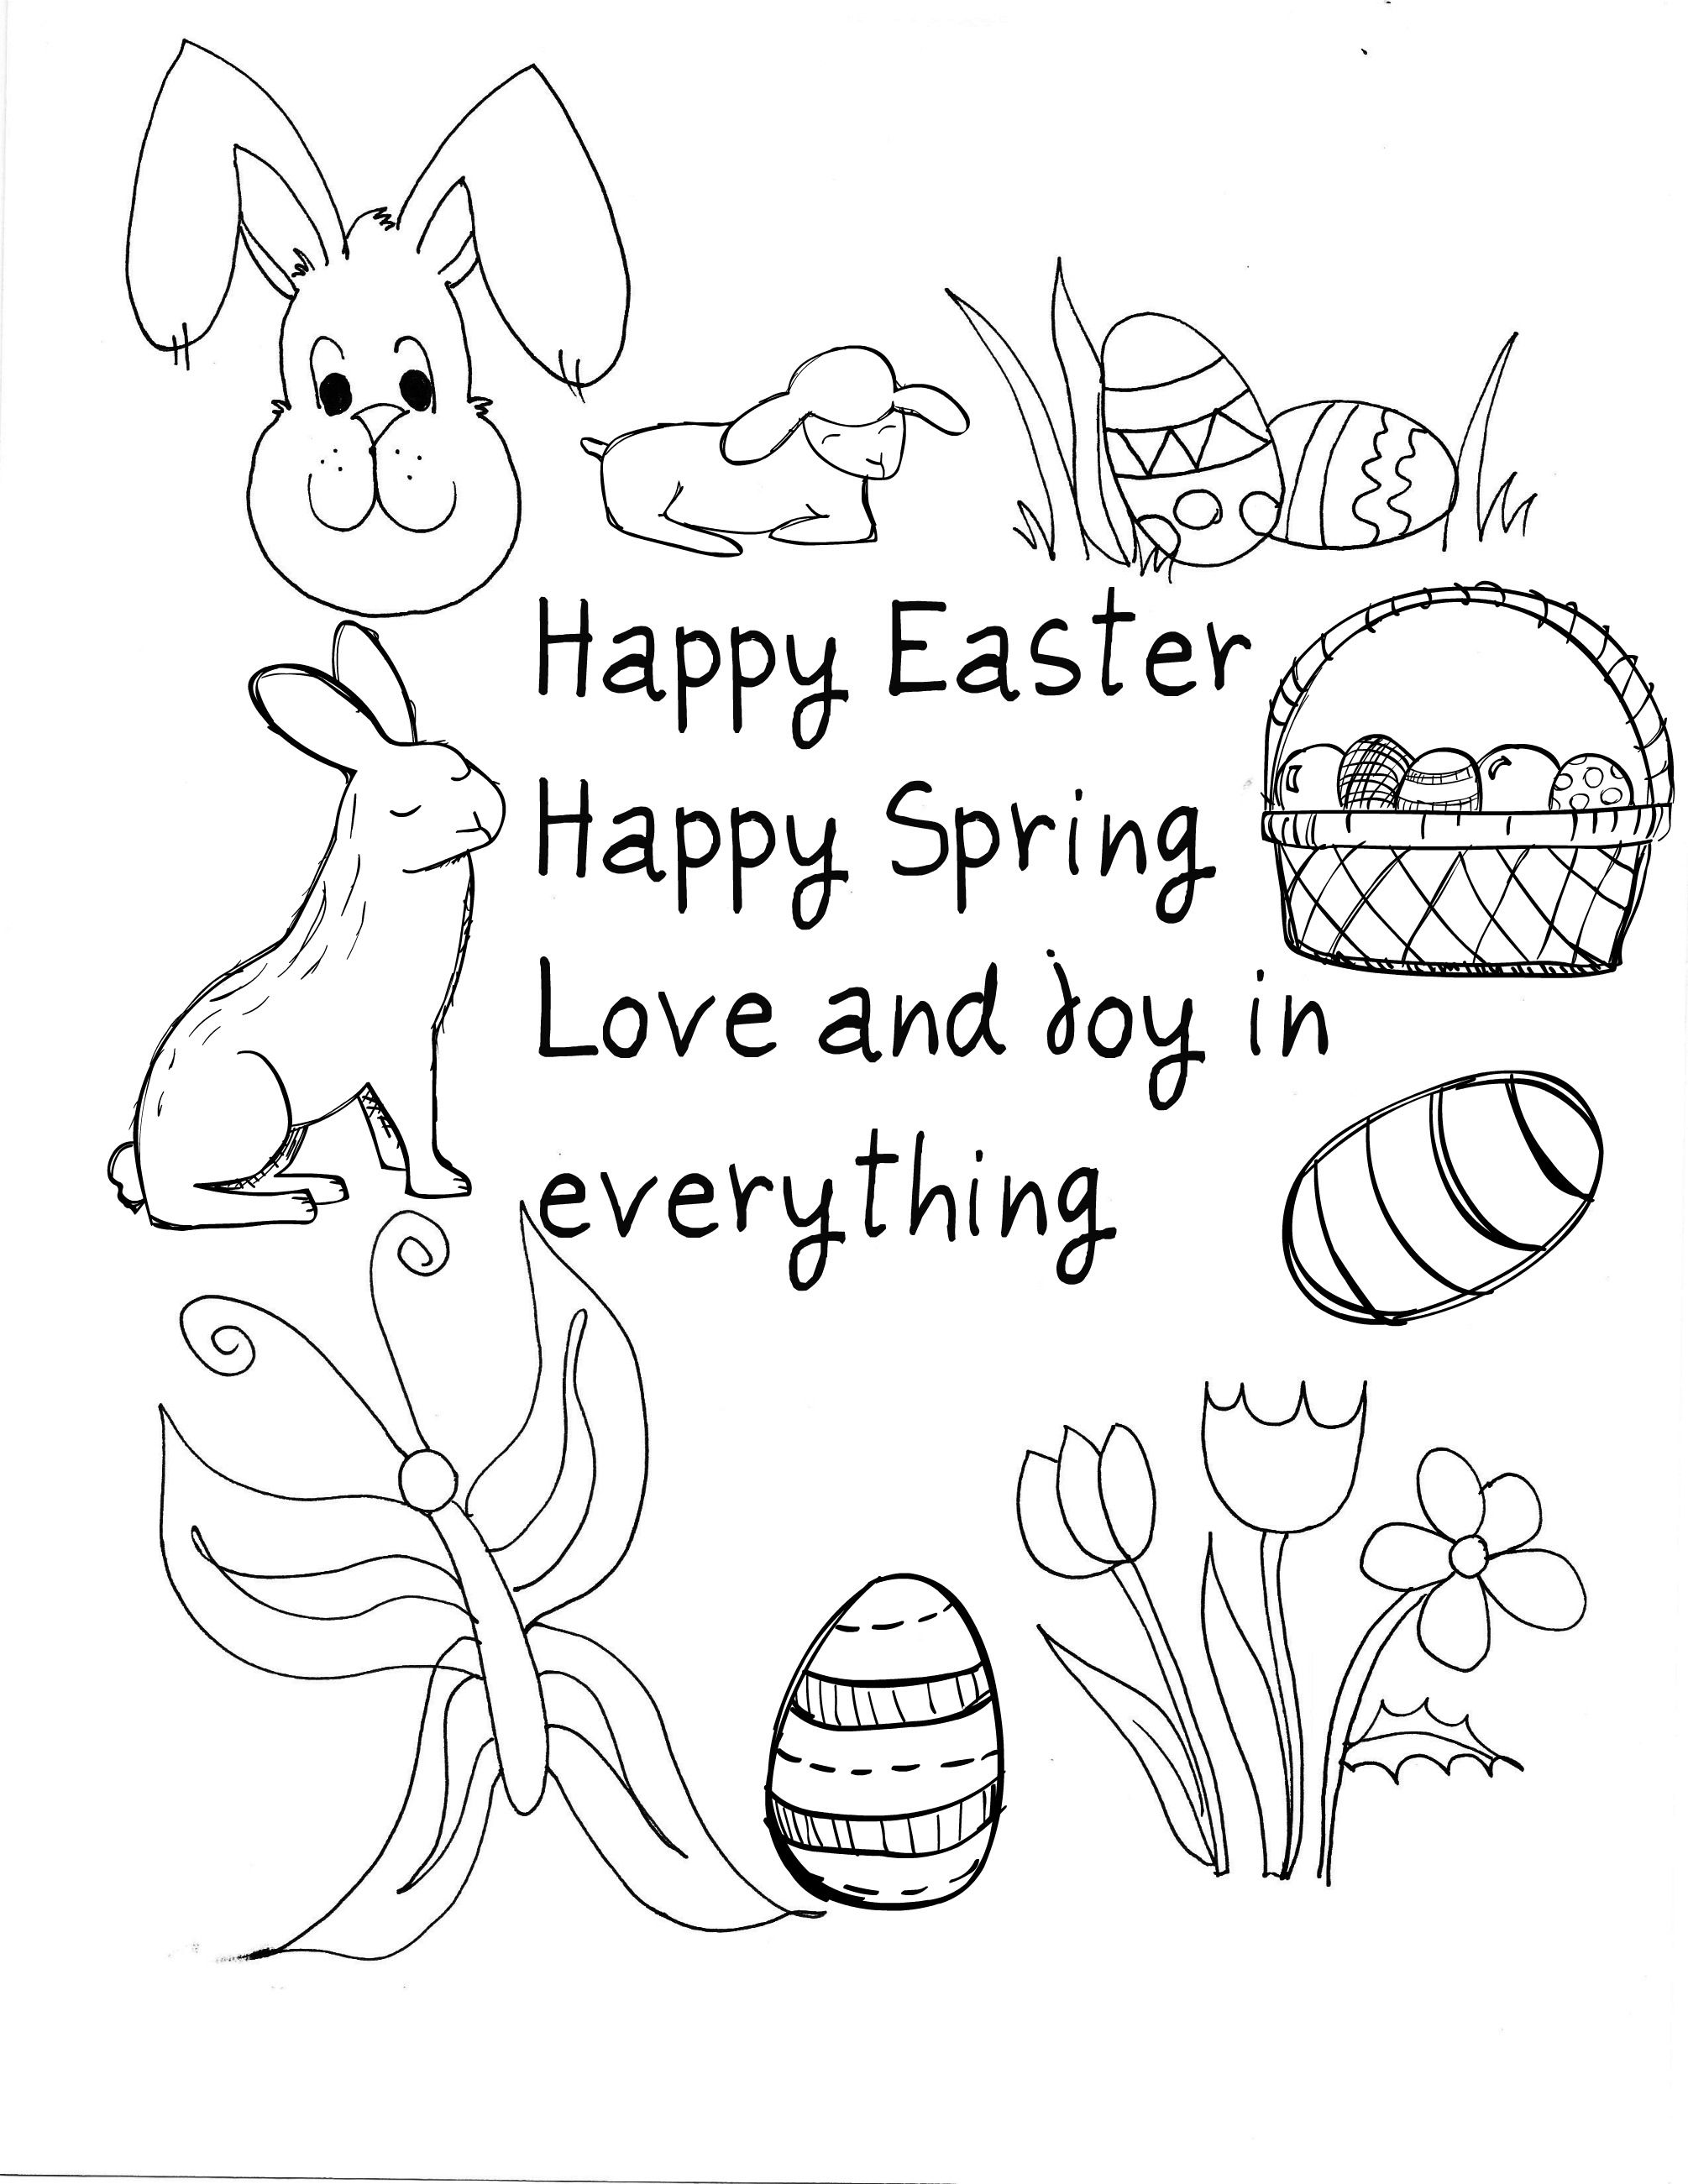 10 Easter Printable Cards To Color. I Just Clicked On The Image, Then Copy  Free Printable Religious Easter Cards